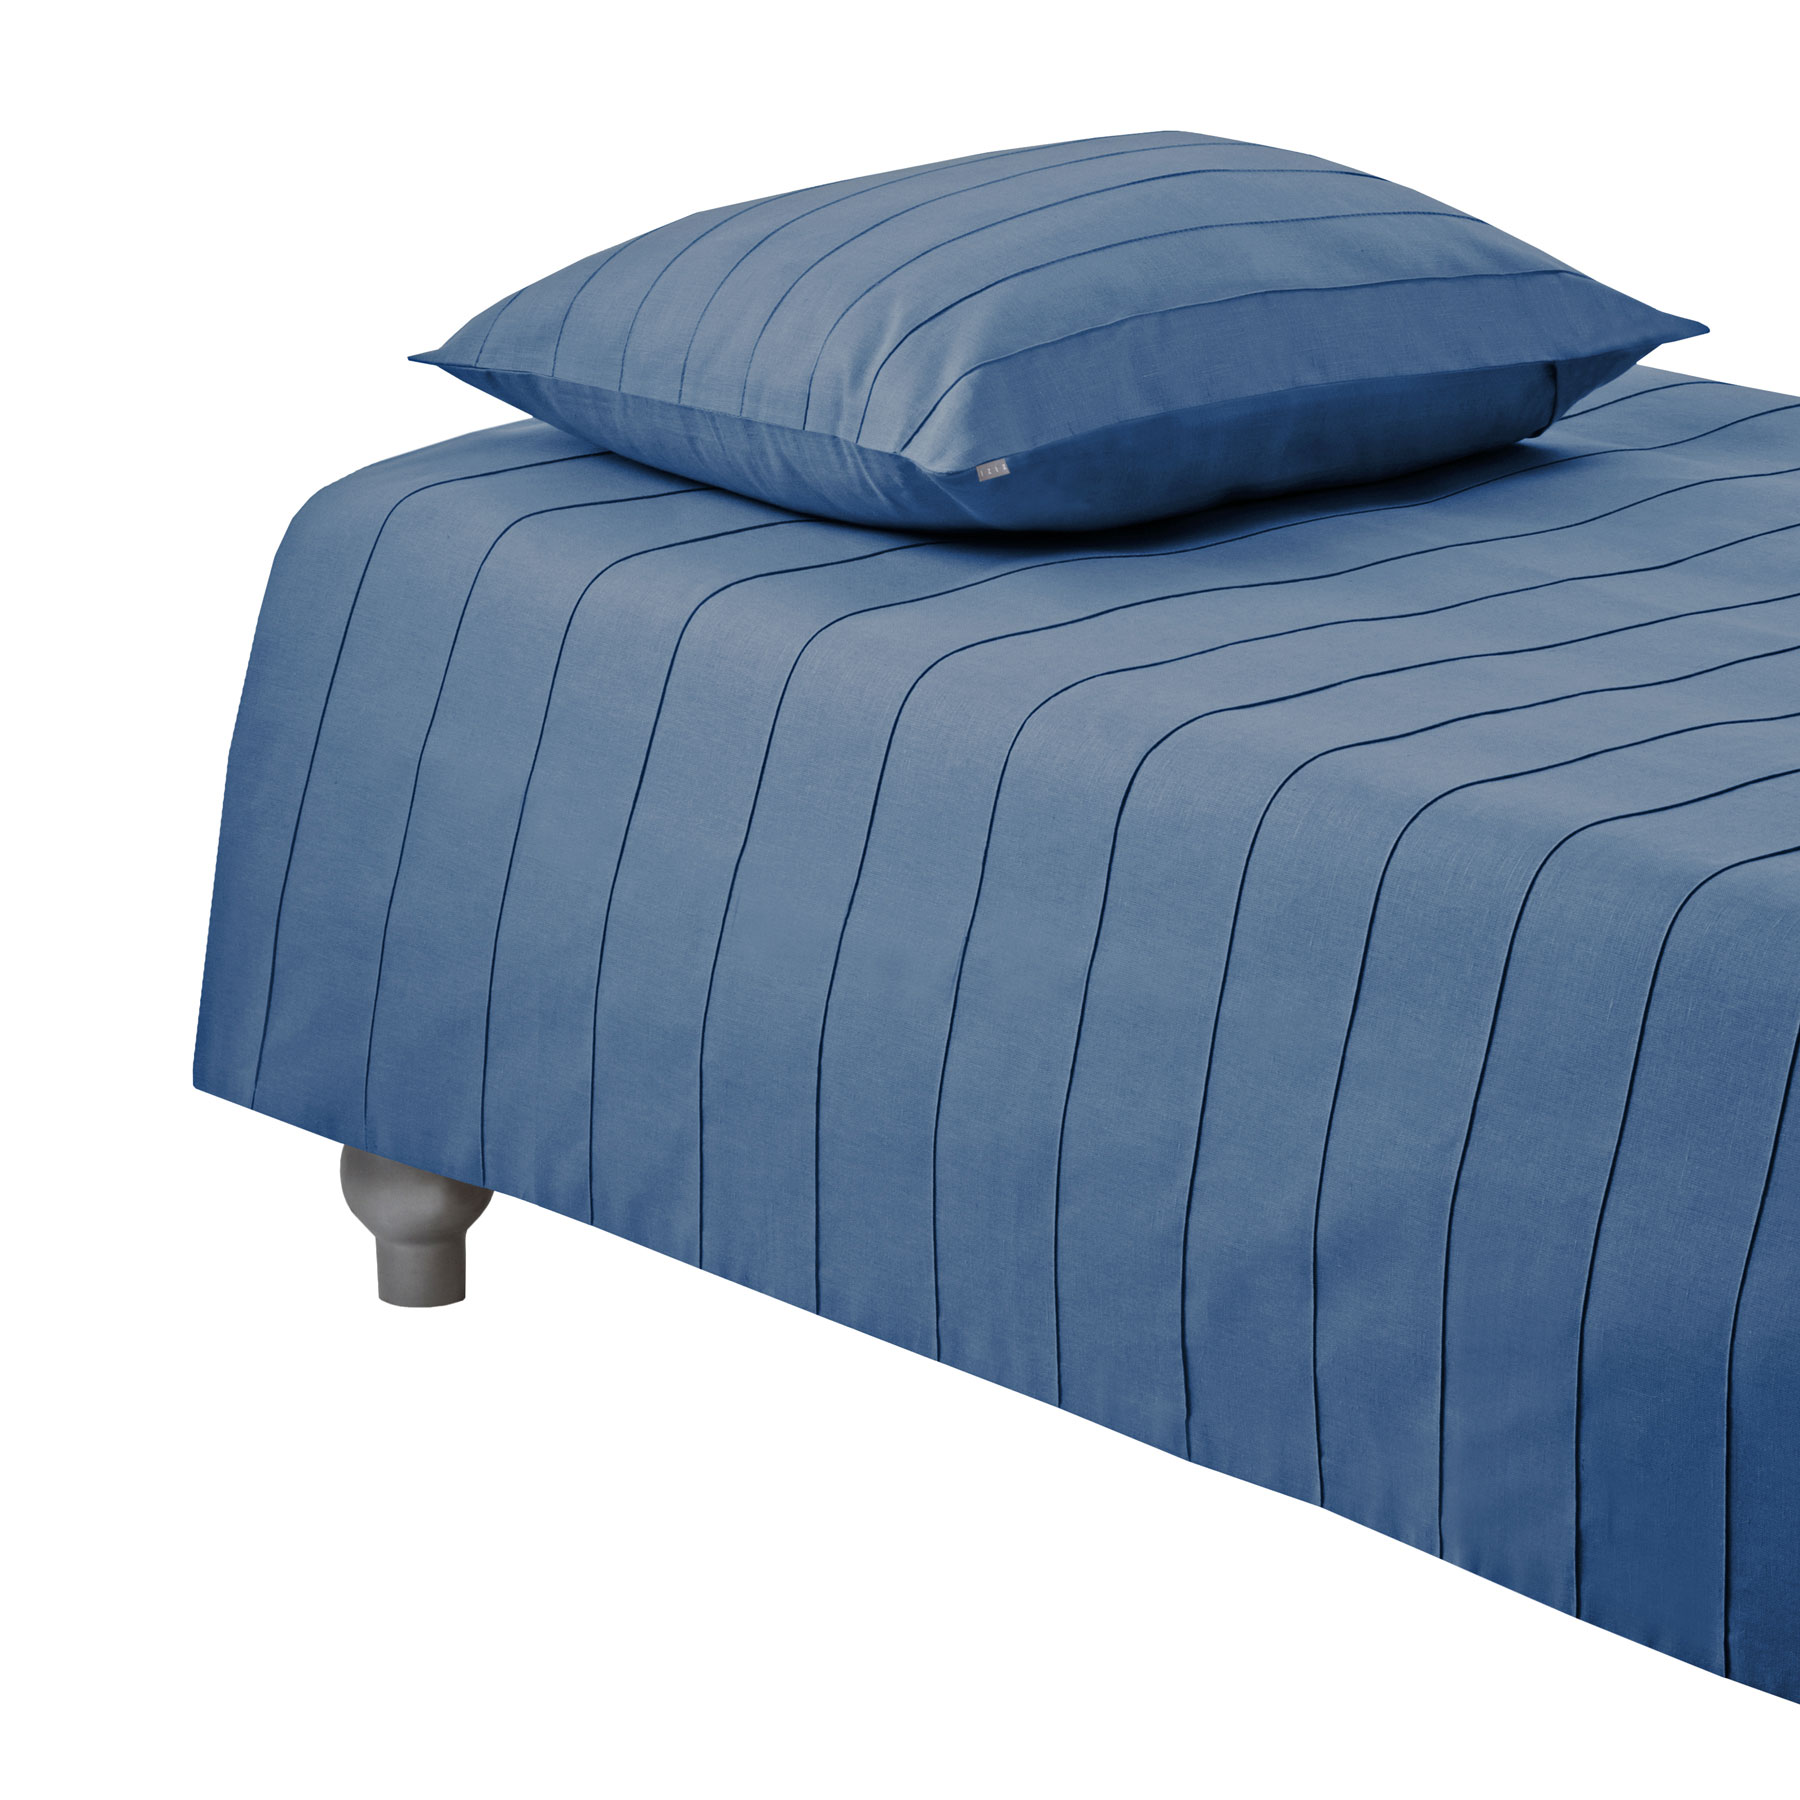 DUVET COVER IRIS <br />denim blue